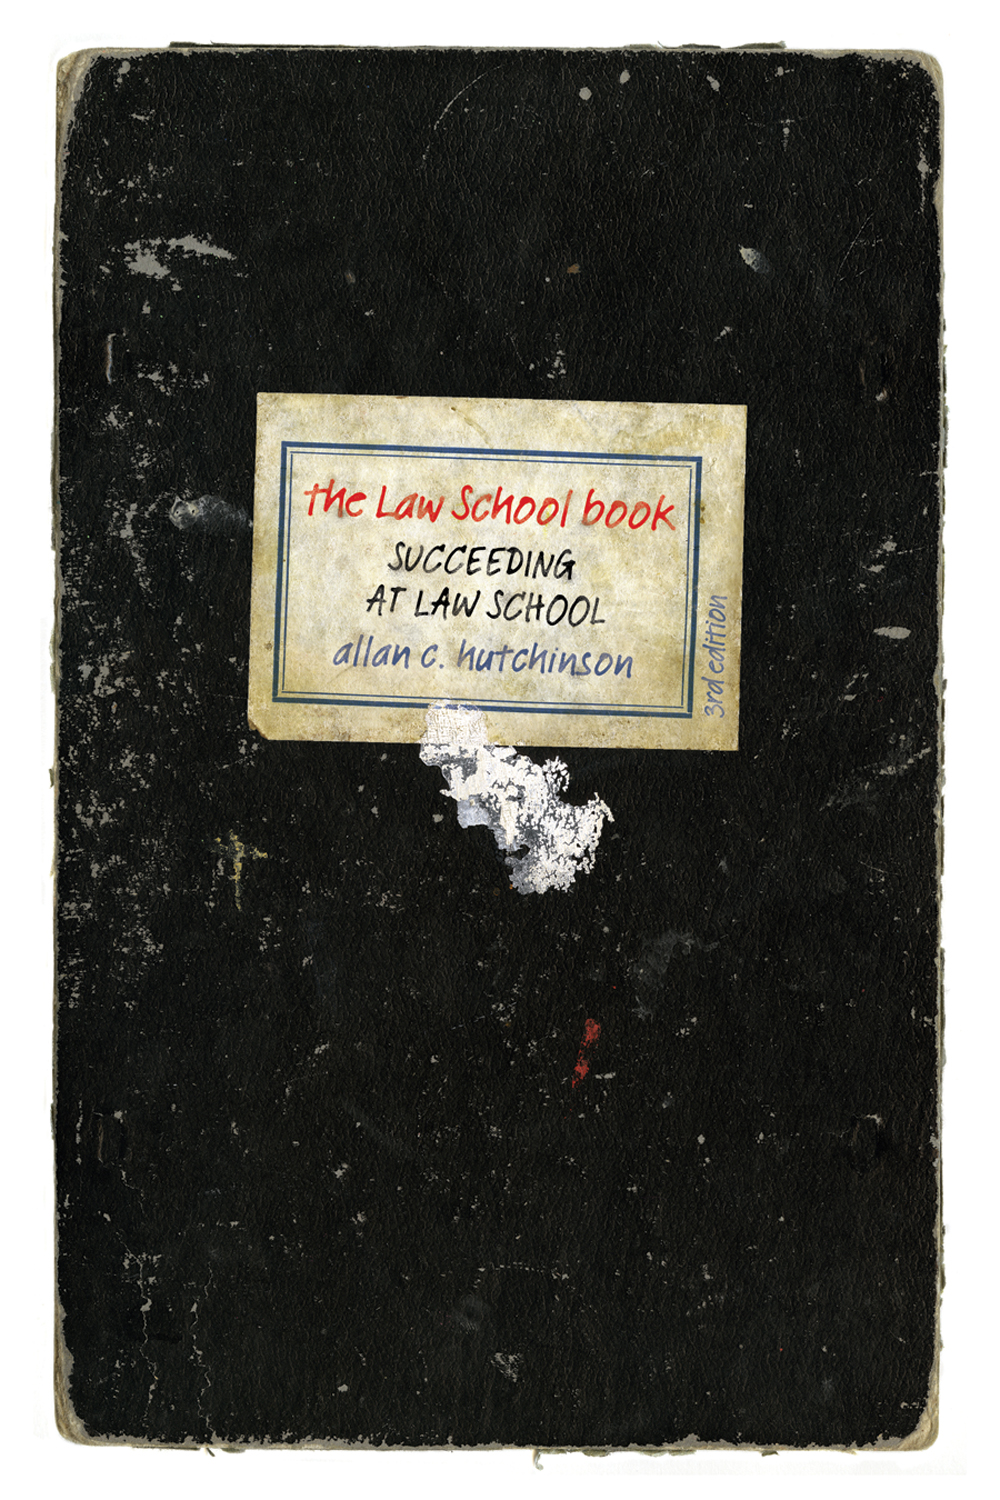 Book cover for Law School Book by Allan Hutchinson, showing a worn notebook with a label with modern font that looks like handwriting.